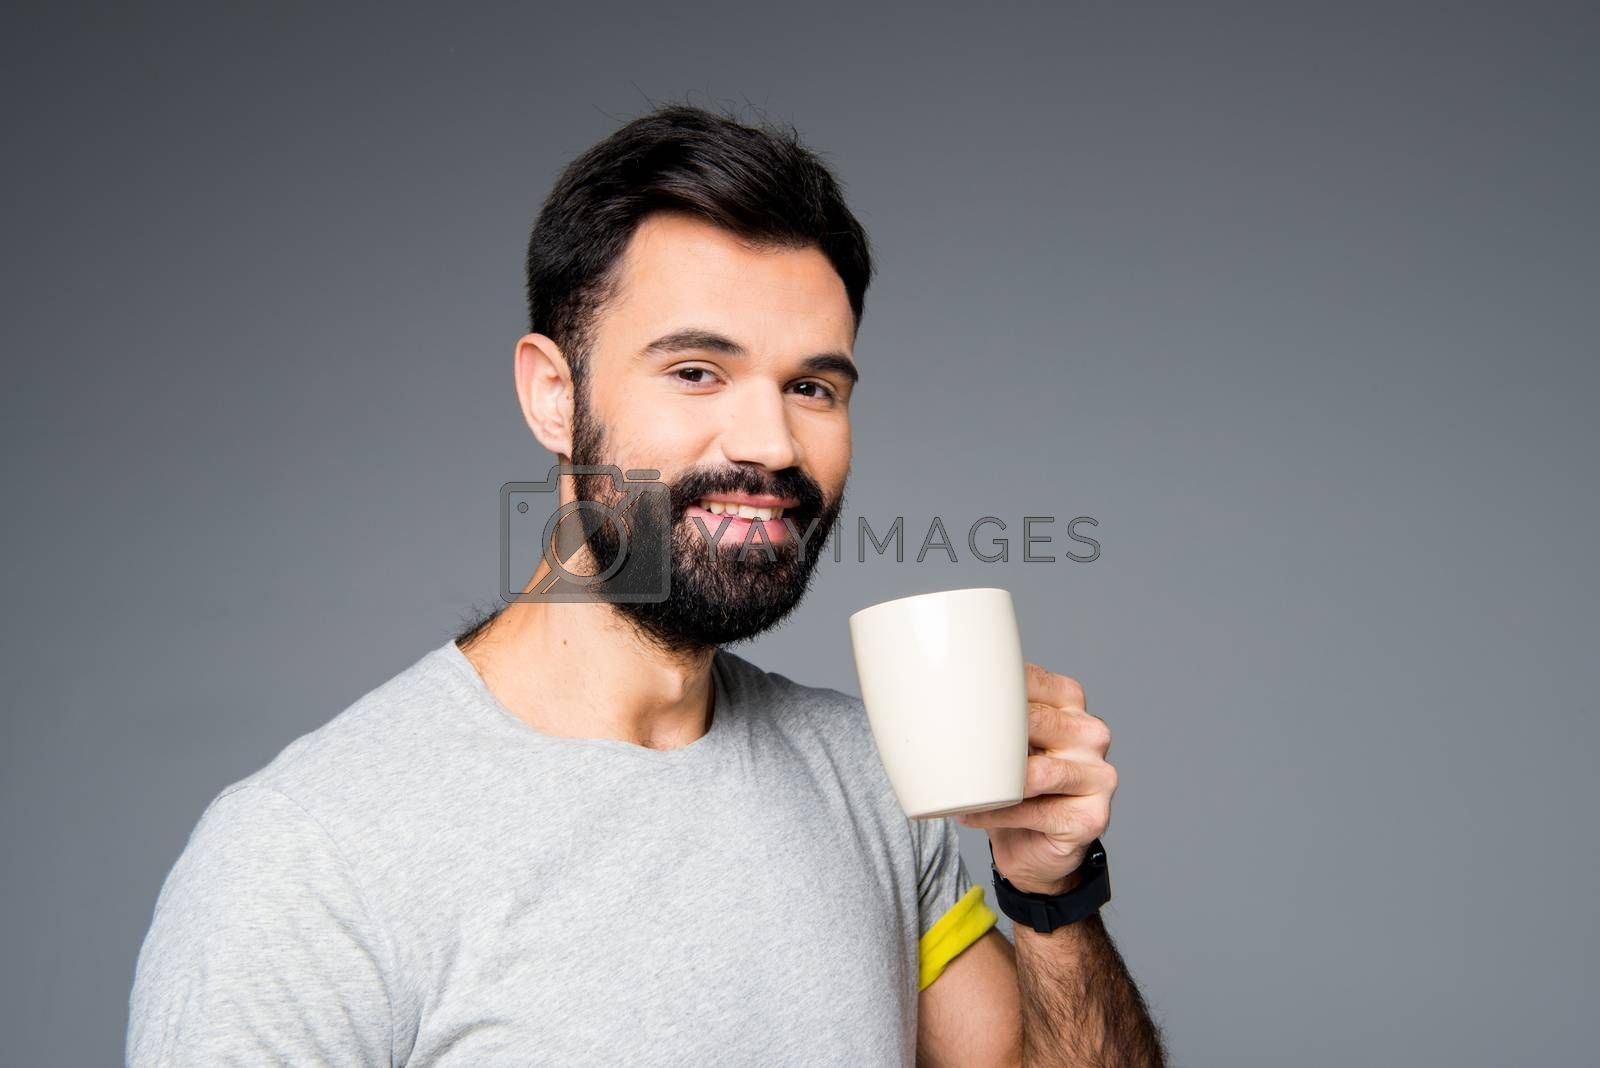 Man holding white cup and looking at camera on grey